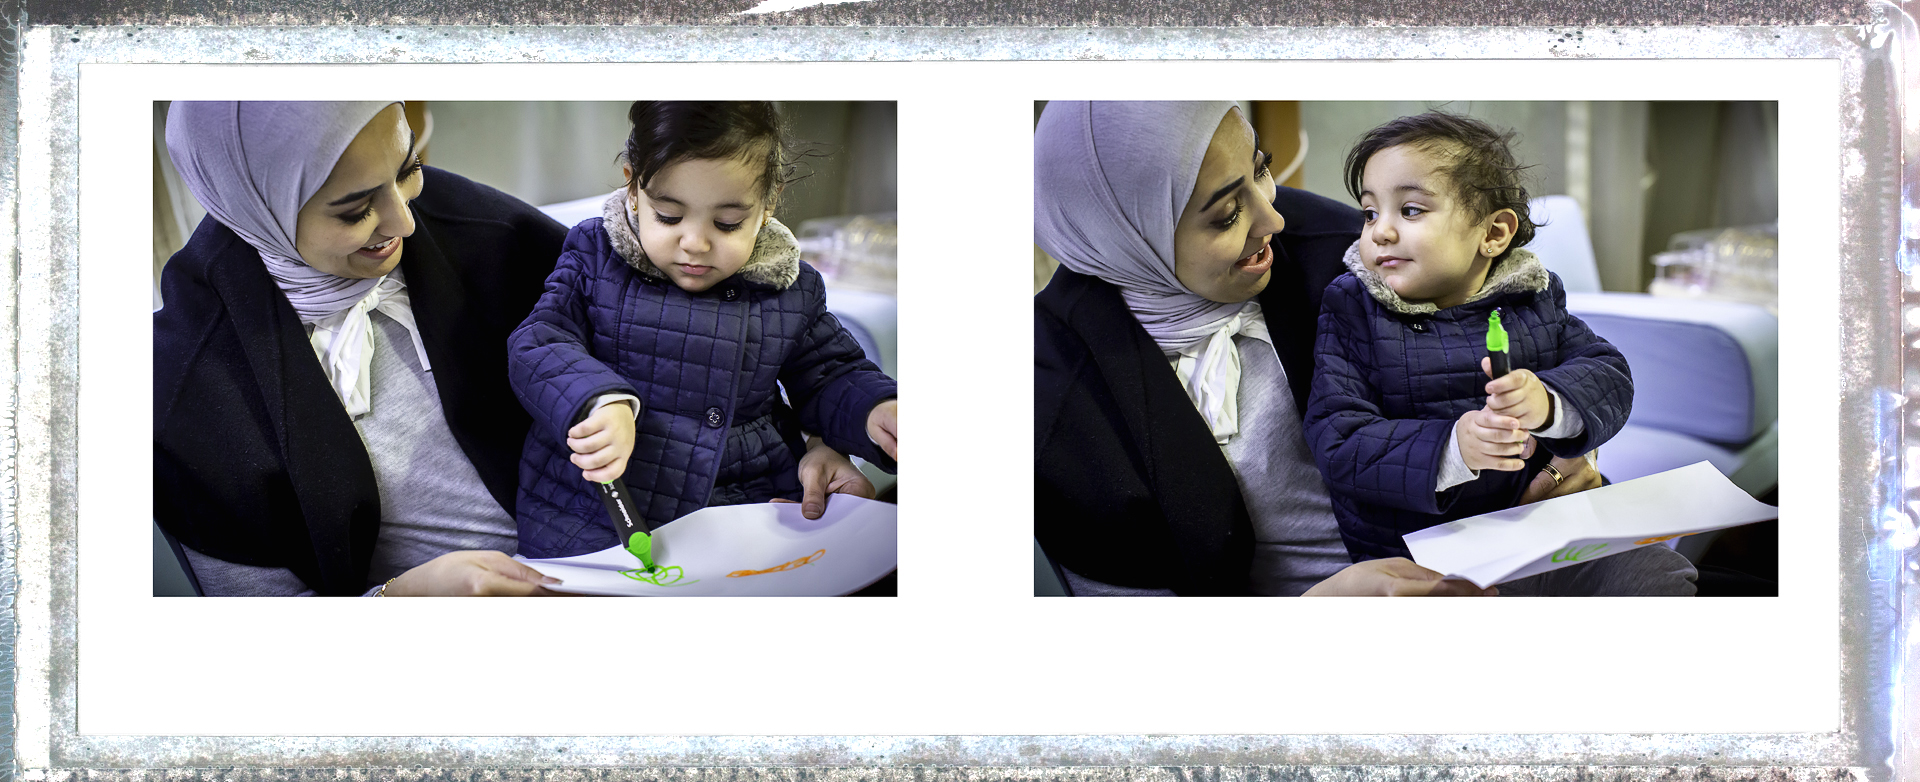 Young kids love to draw and seek approval from their parents, Alzain is no different, a natural family portrait.